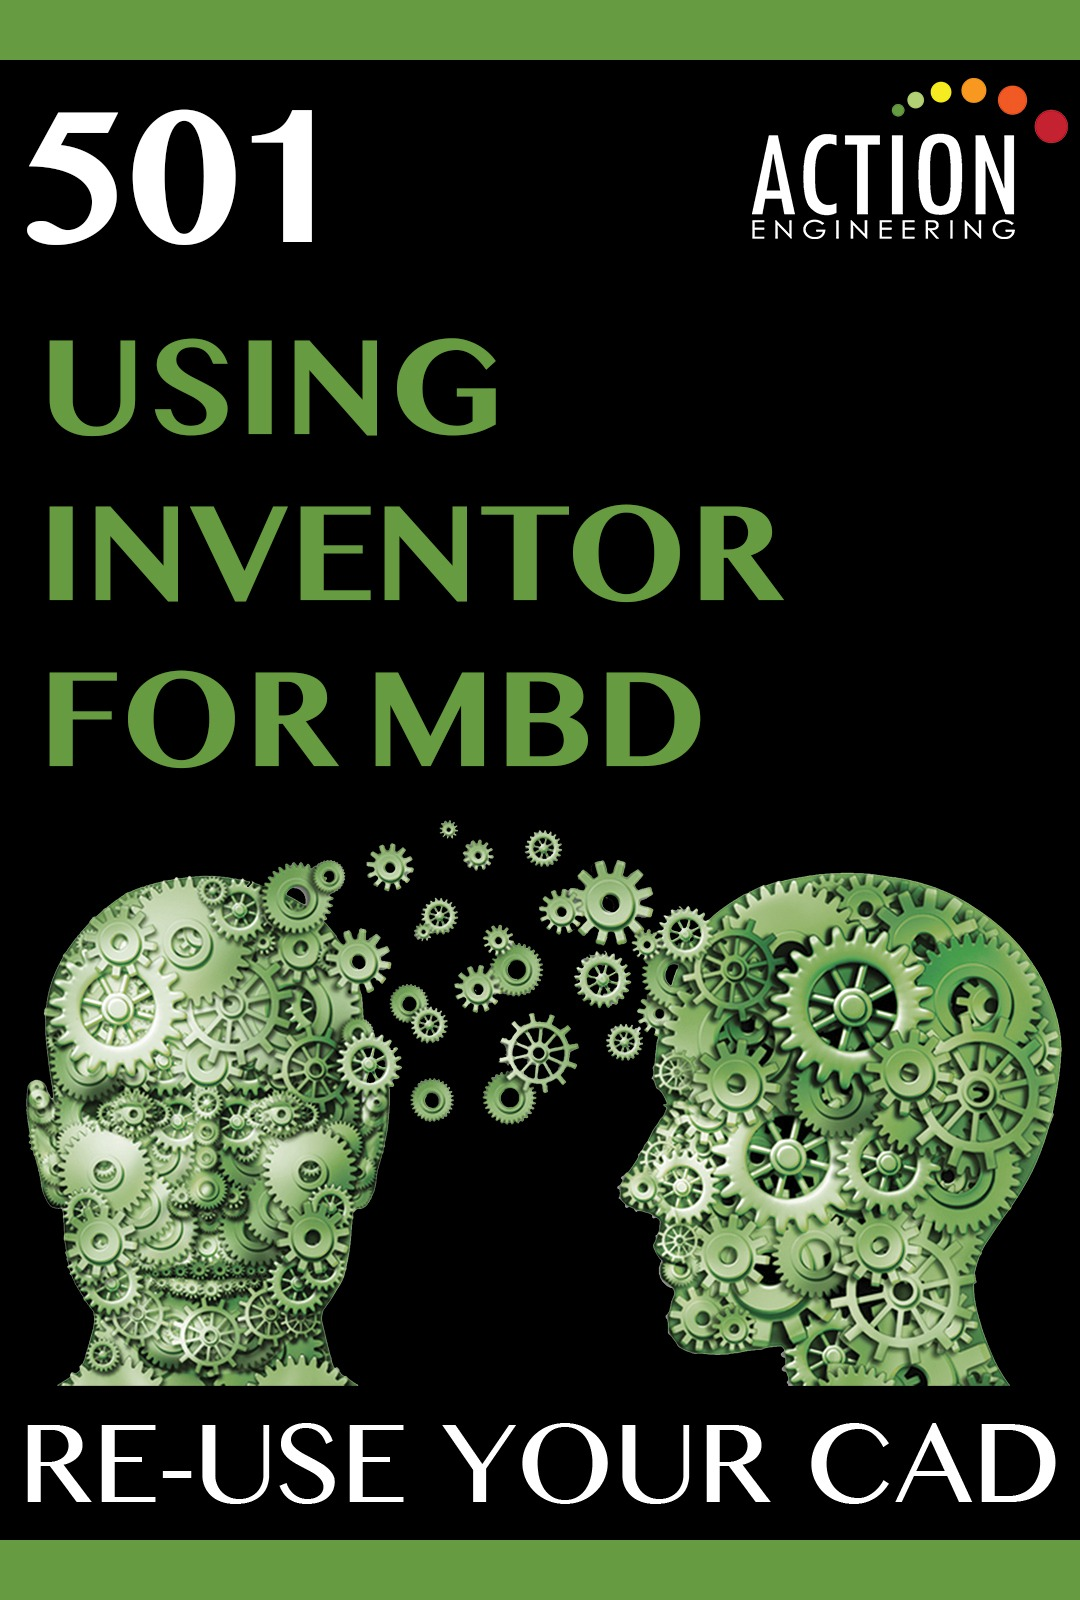 501-Using Inventor for MBD Re-Use Your CAD Course Poster